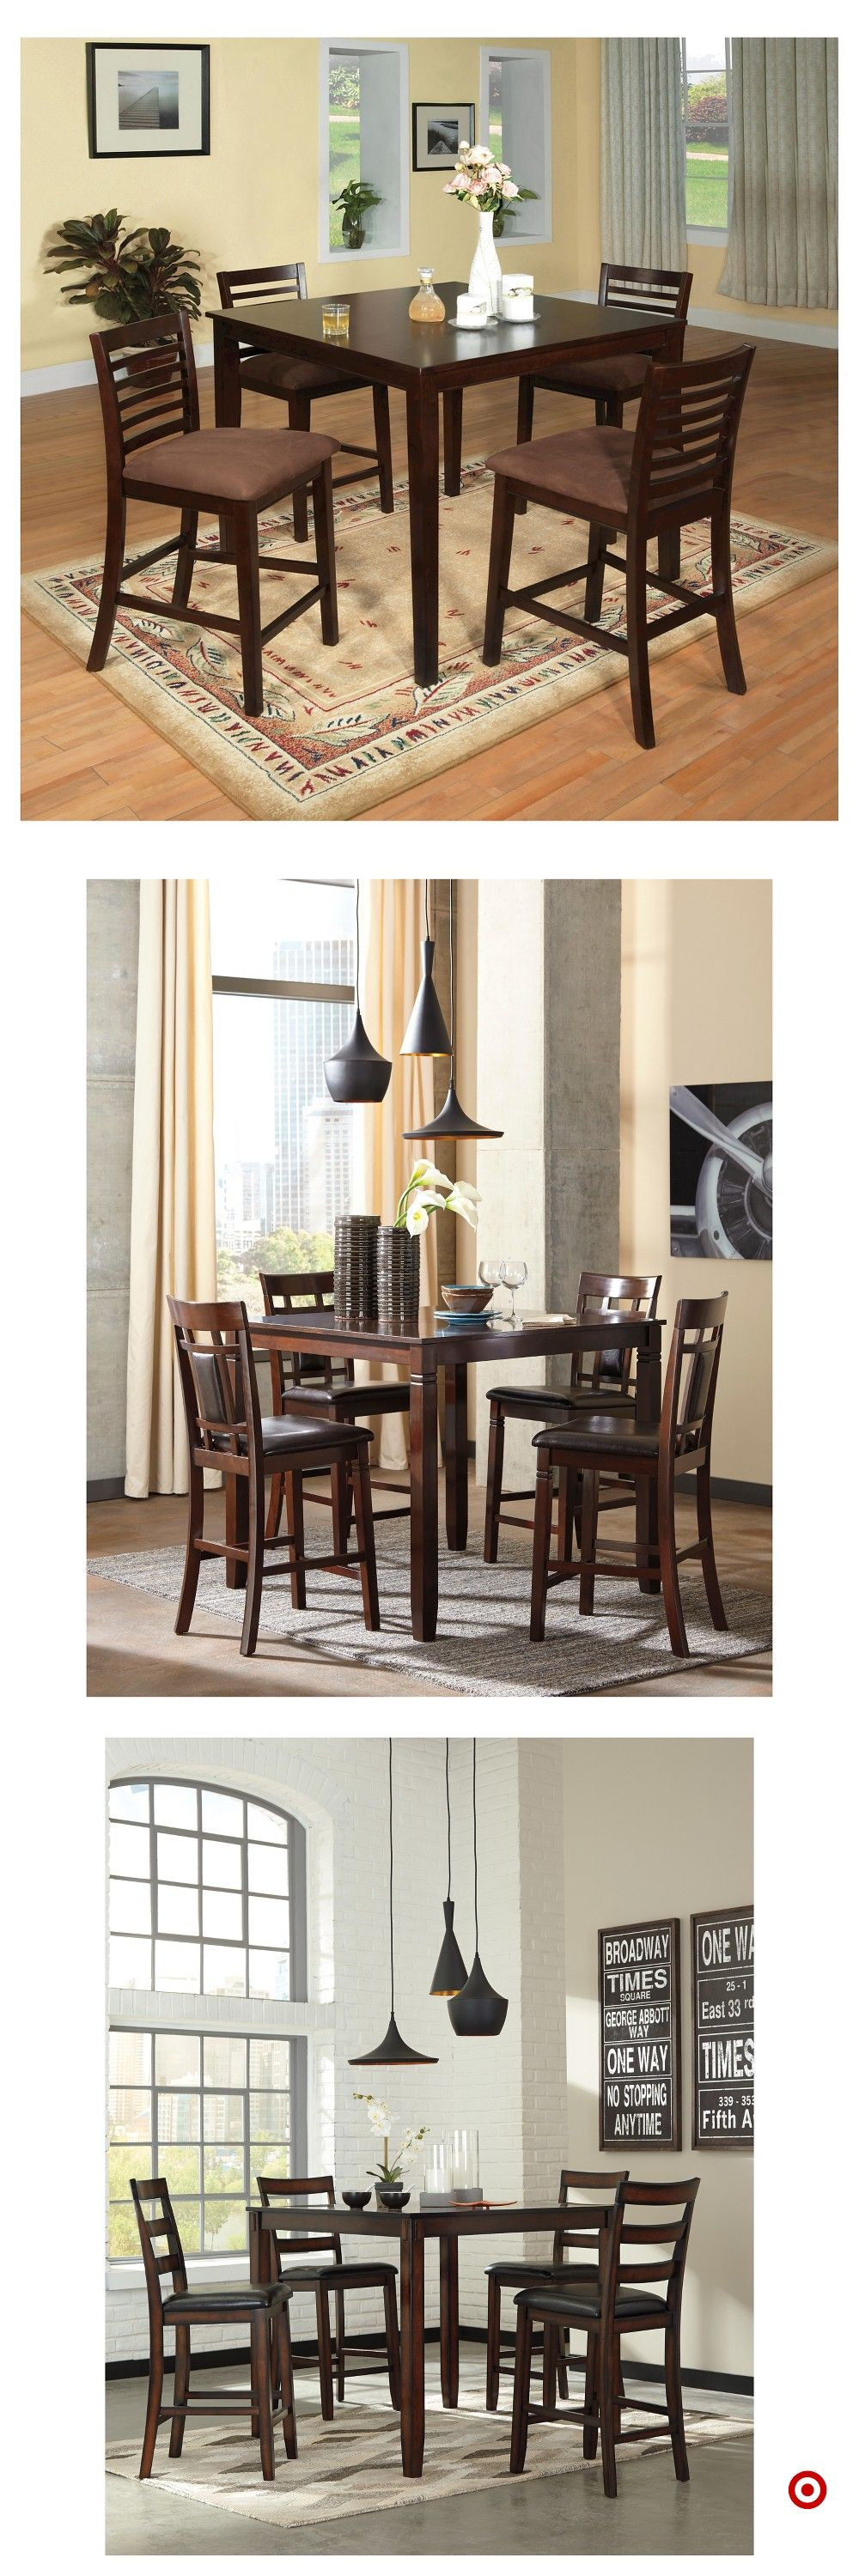 Shop Tar for dining table set you will love at great low prices